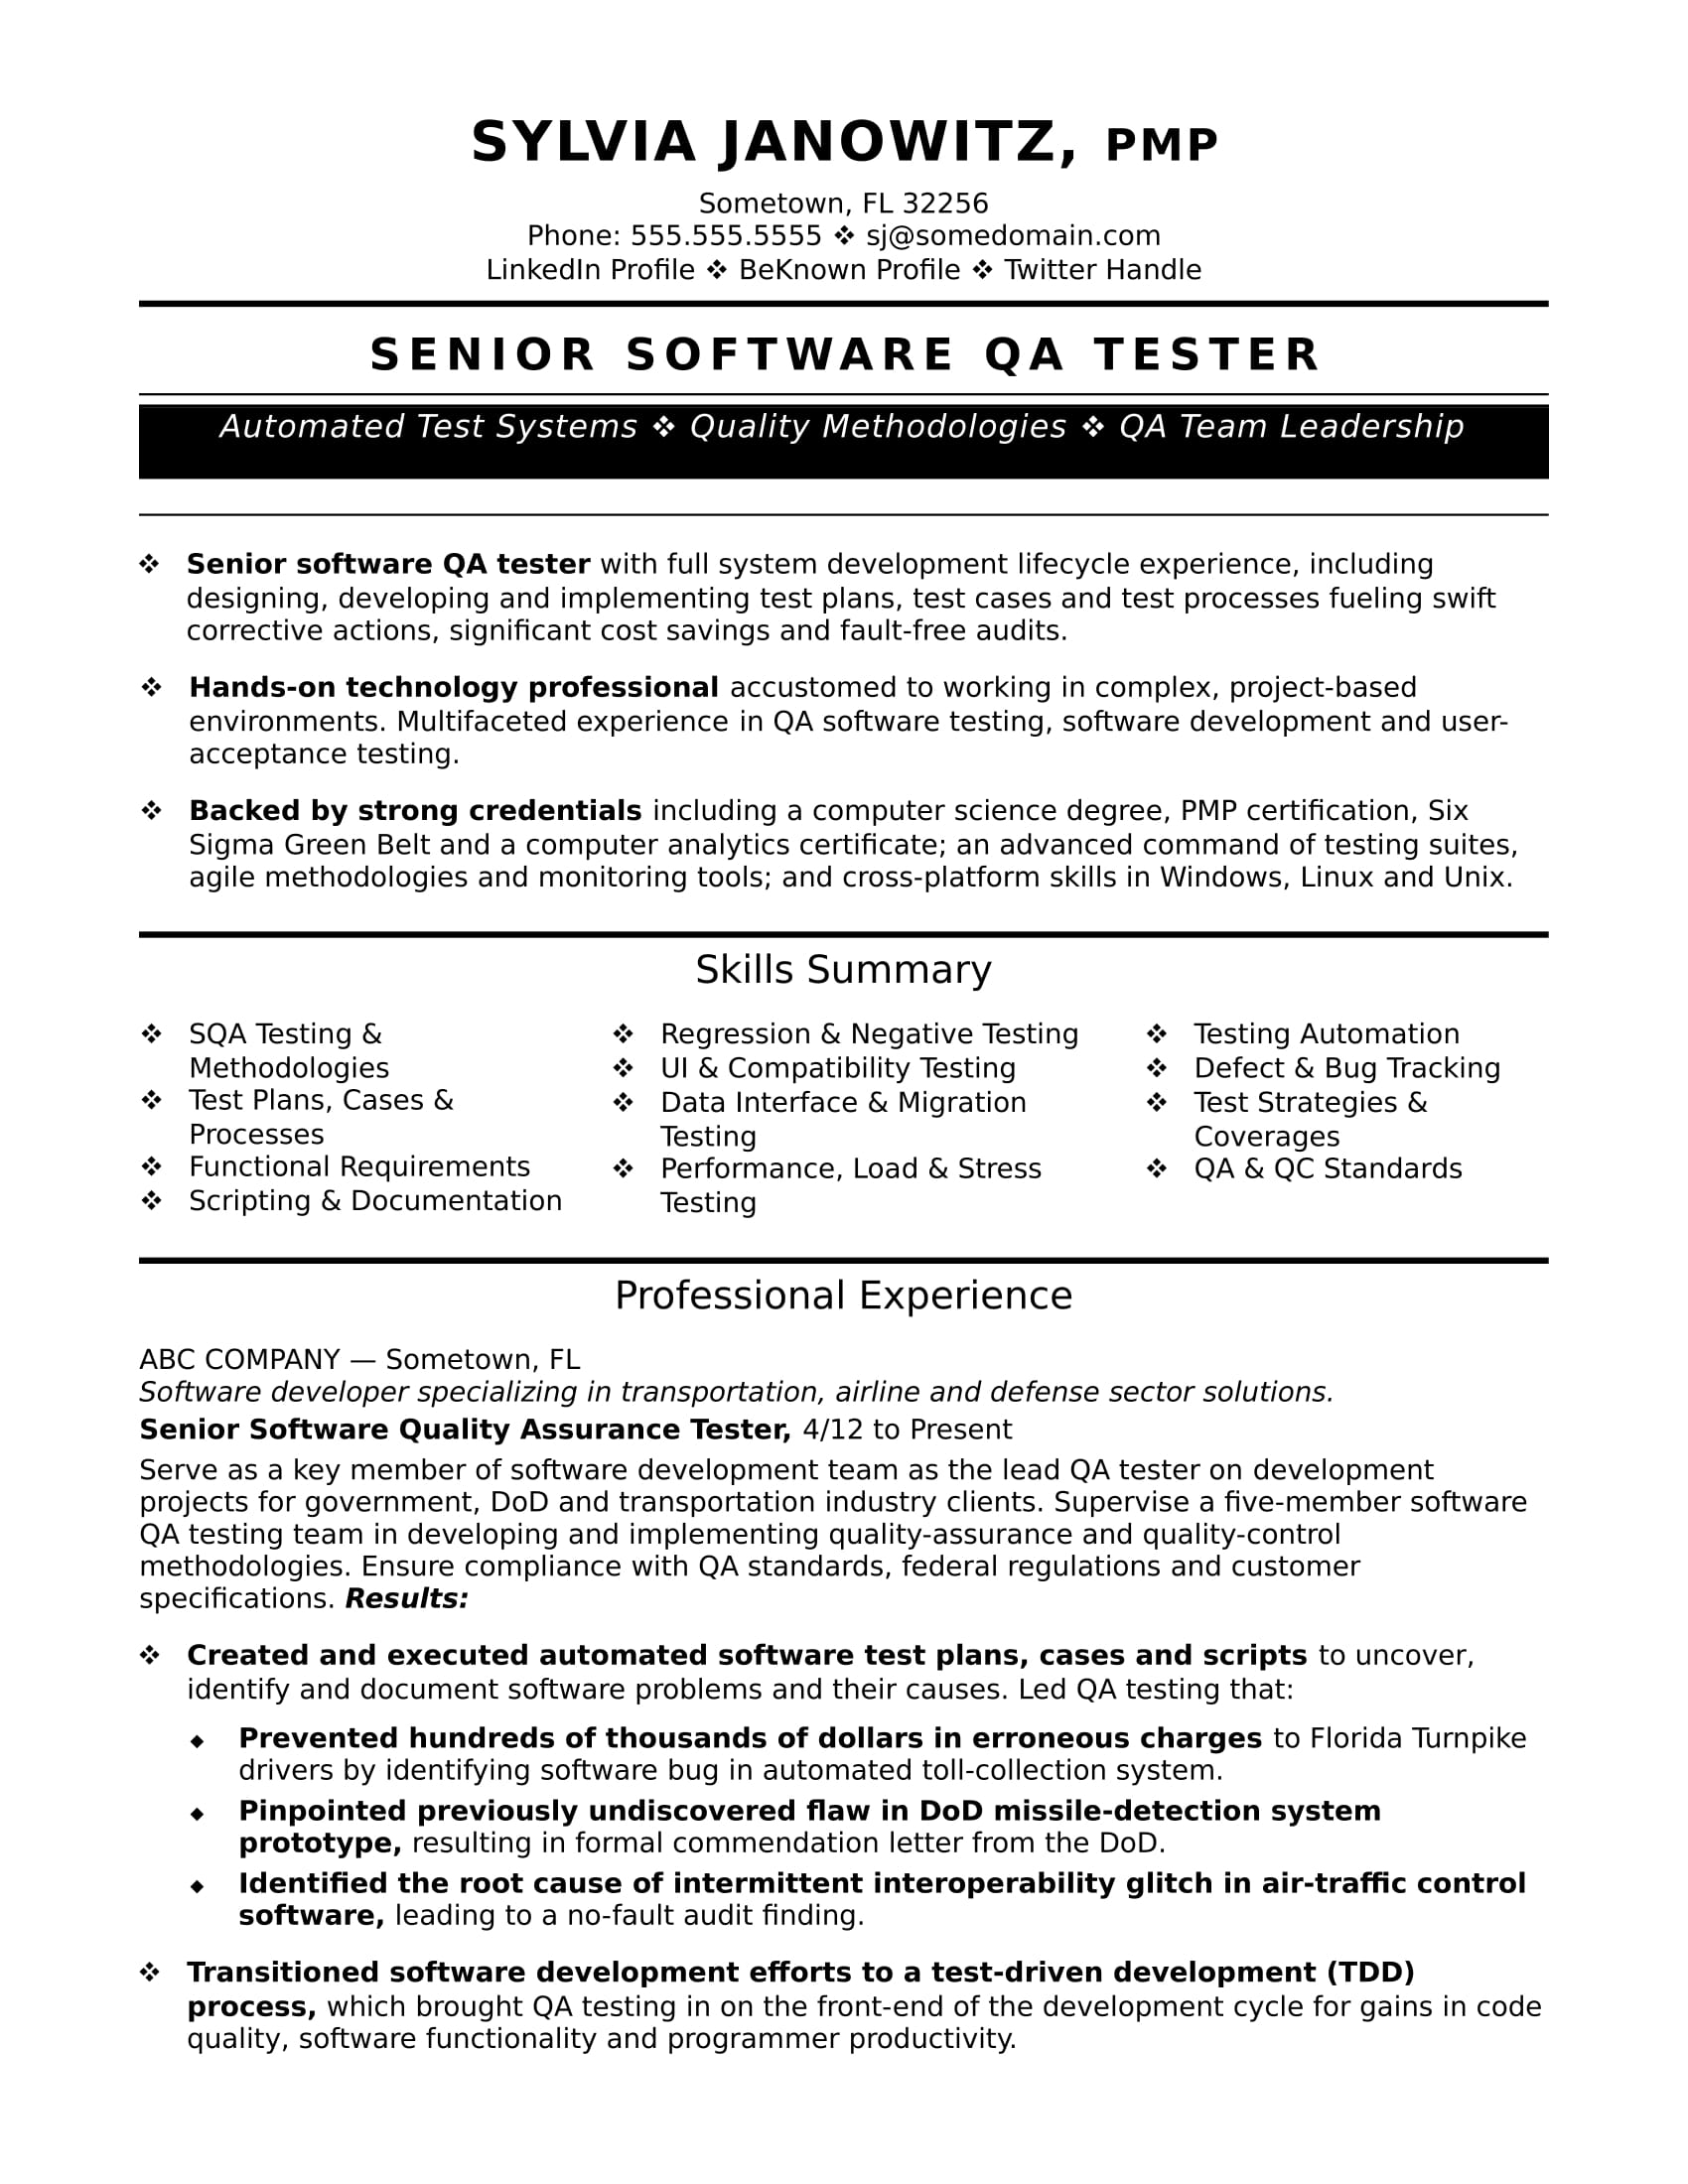 Resume For Qa Experienced Software Tester Sample Monster Com